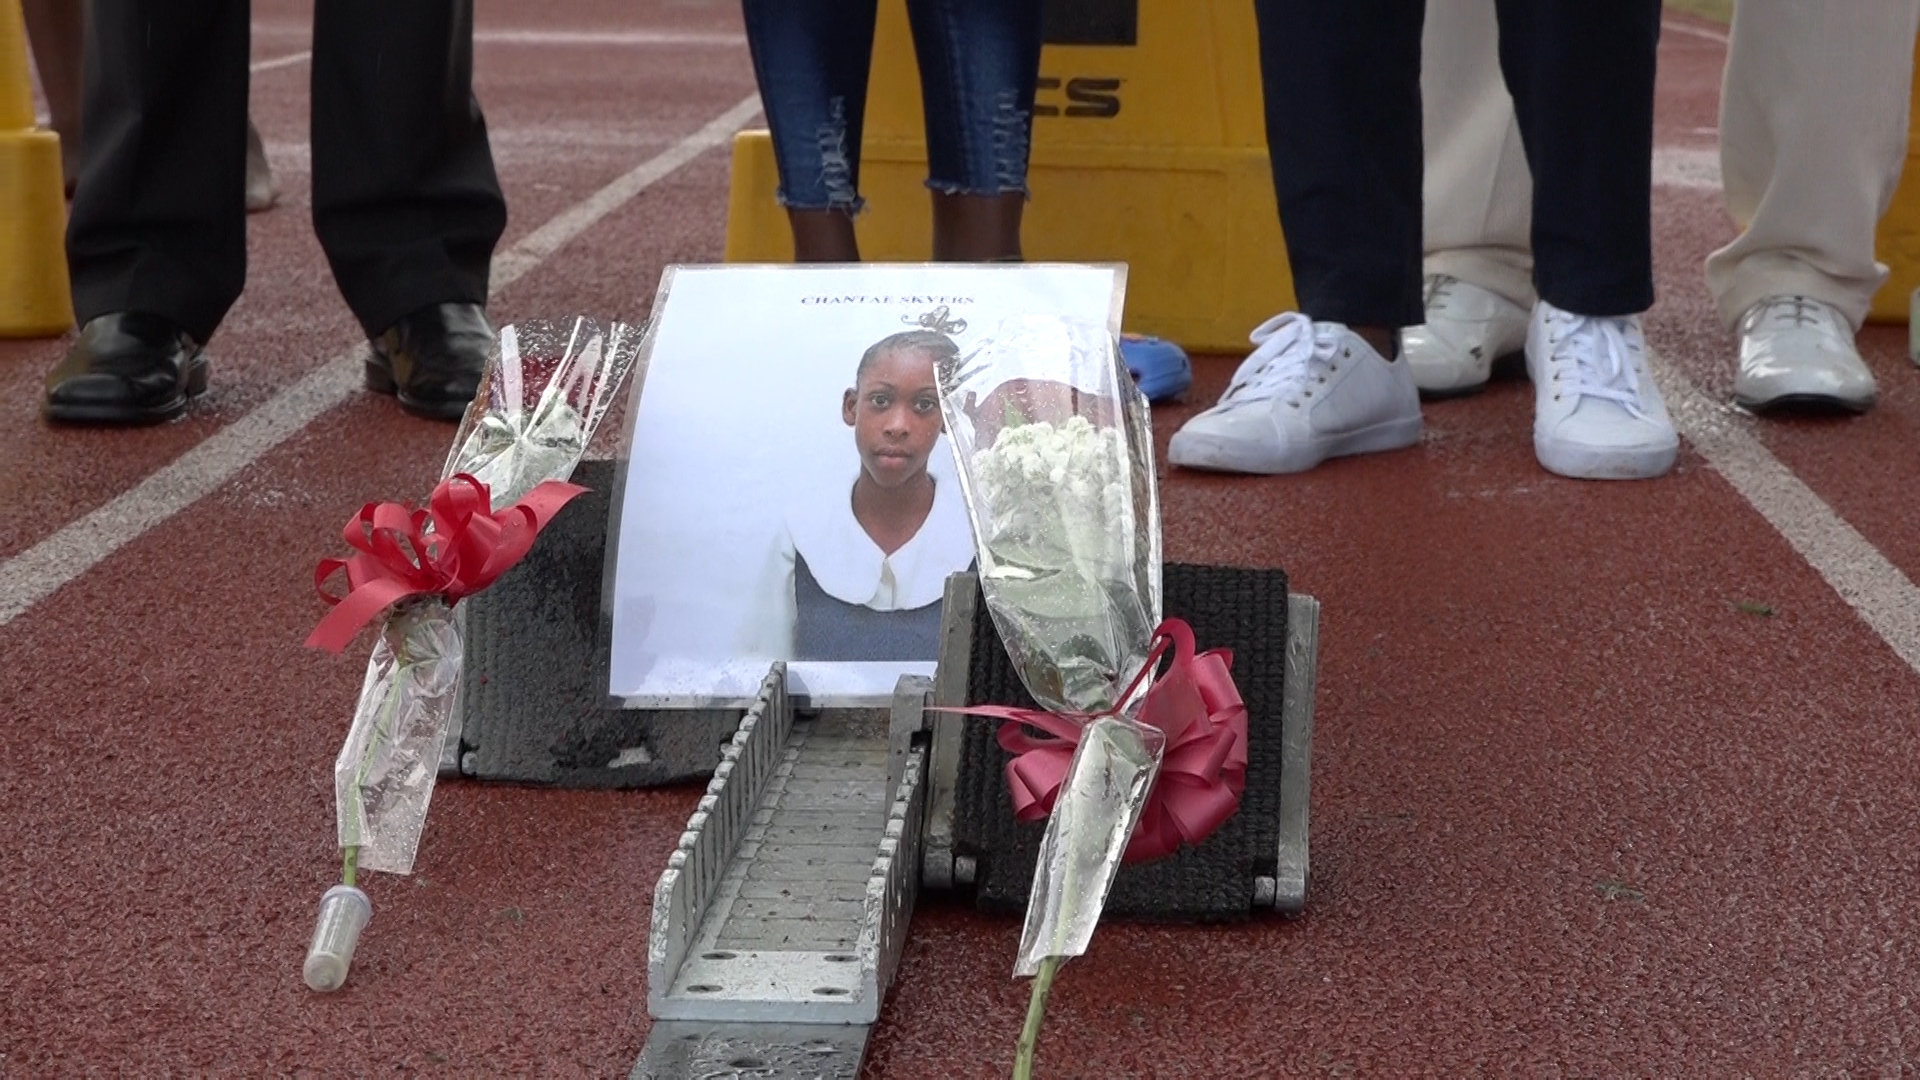 Sport ministry honours slain young athlete at Primary Champs